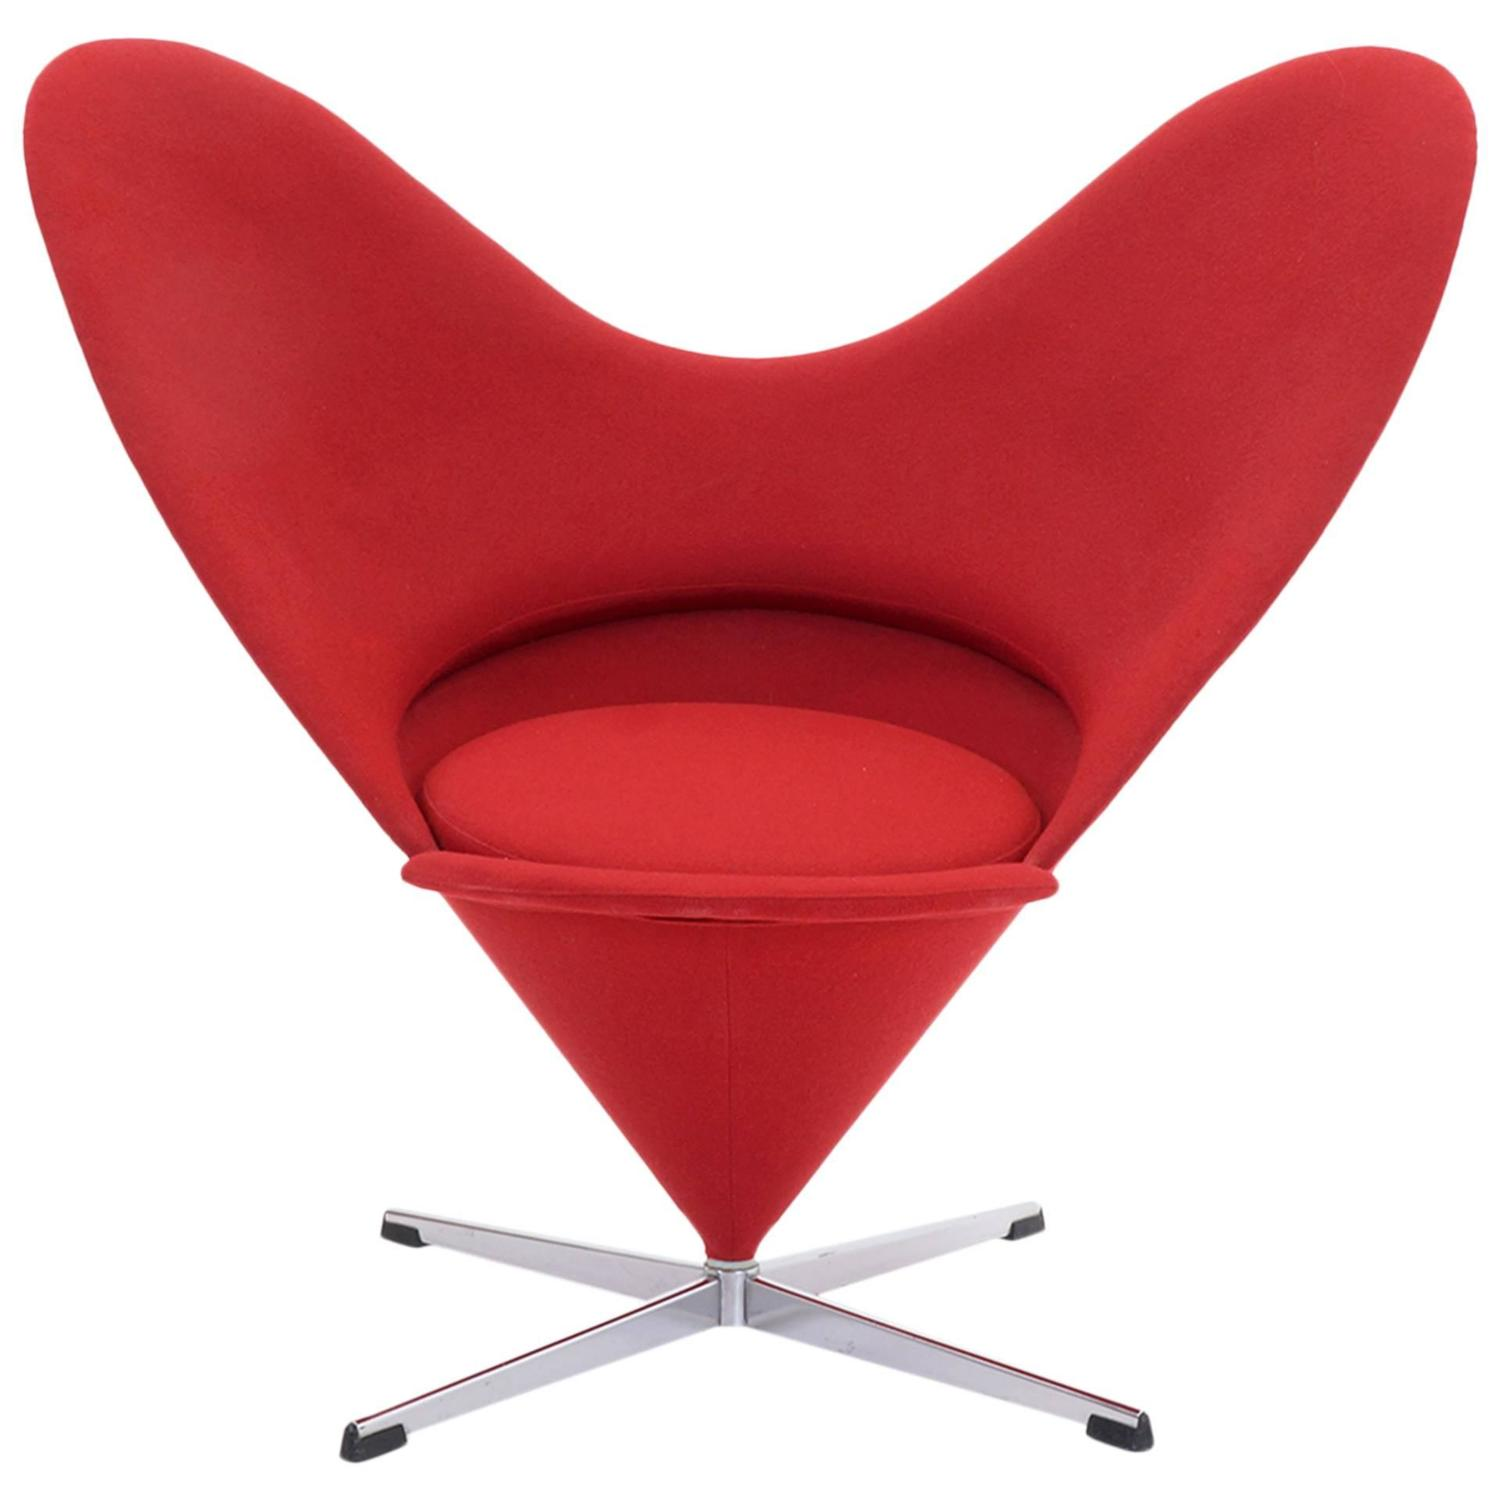 Heart Chair Original Verner Panton Cone Heart Chair For Plus Linje For